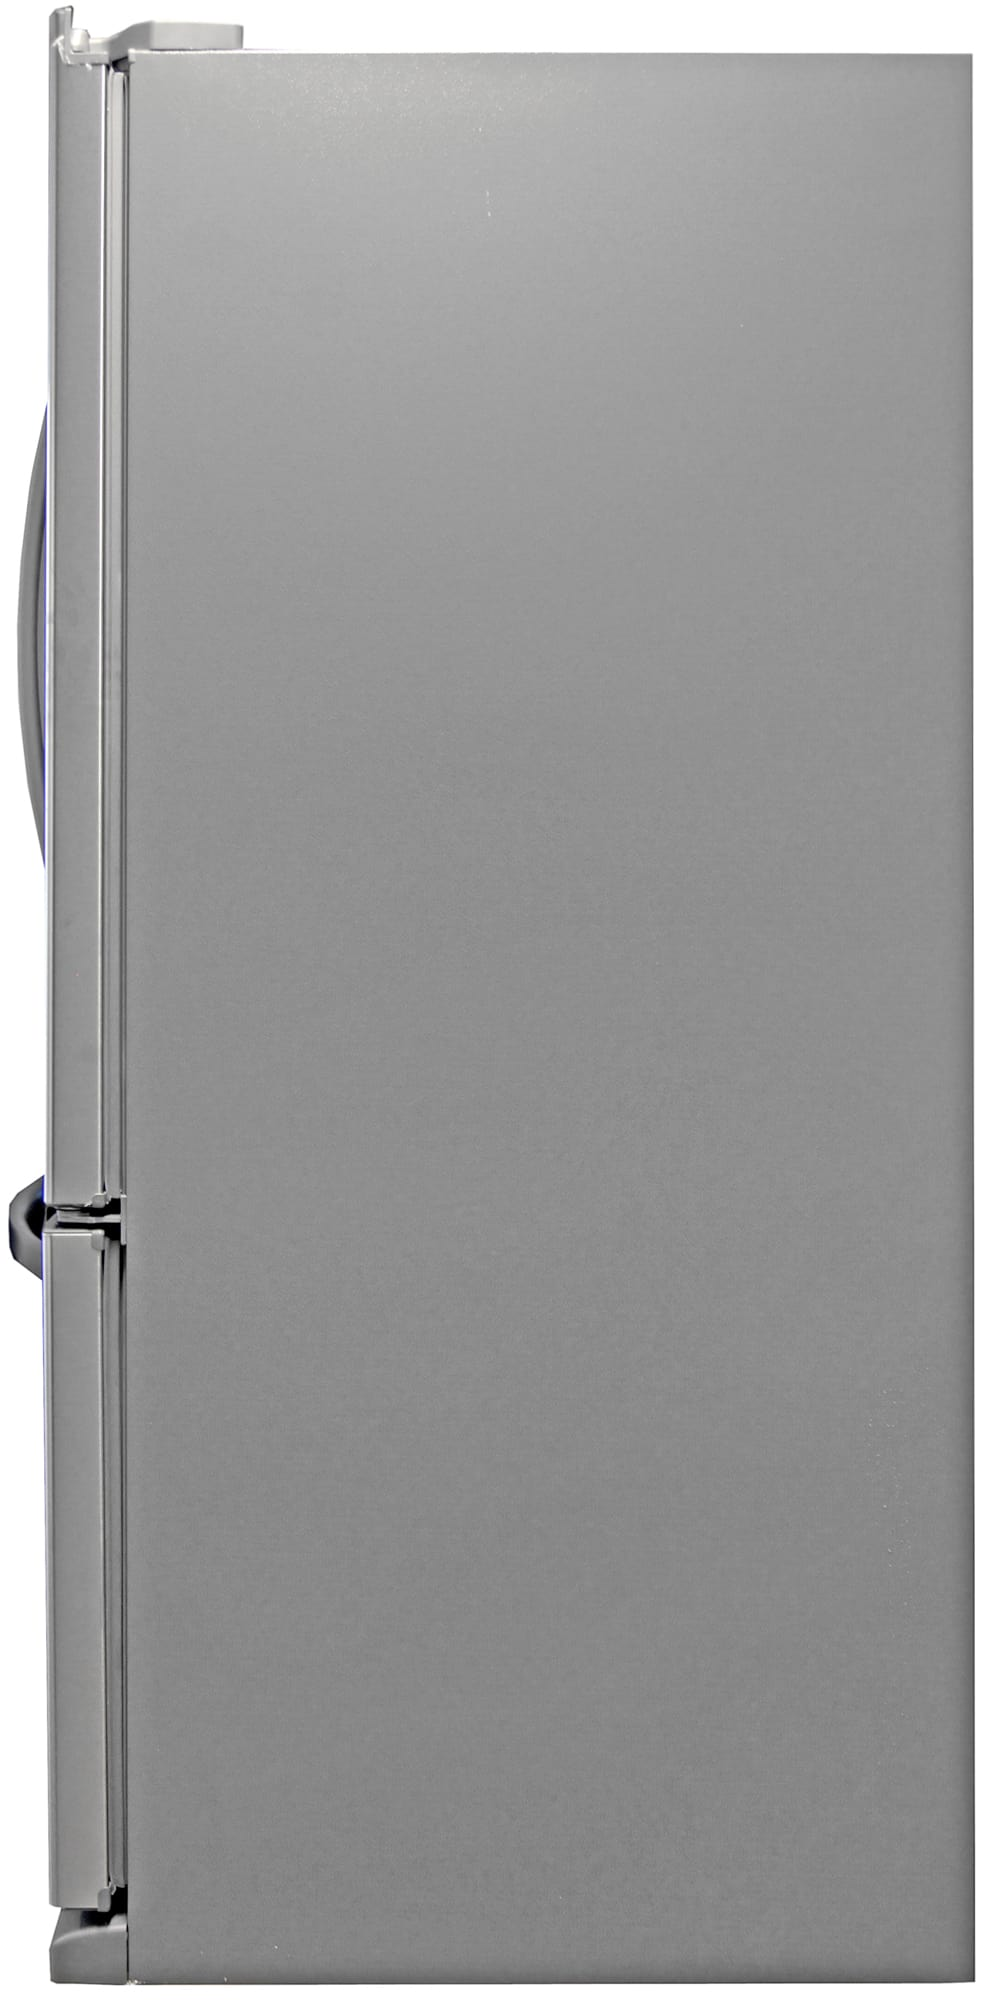 Grey matte sides are standard for fridges like the Kenmore 72013.